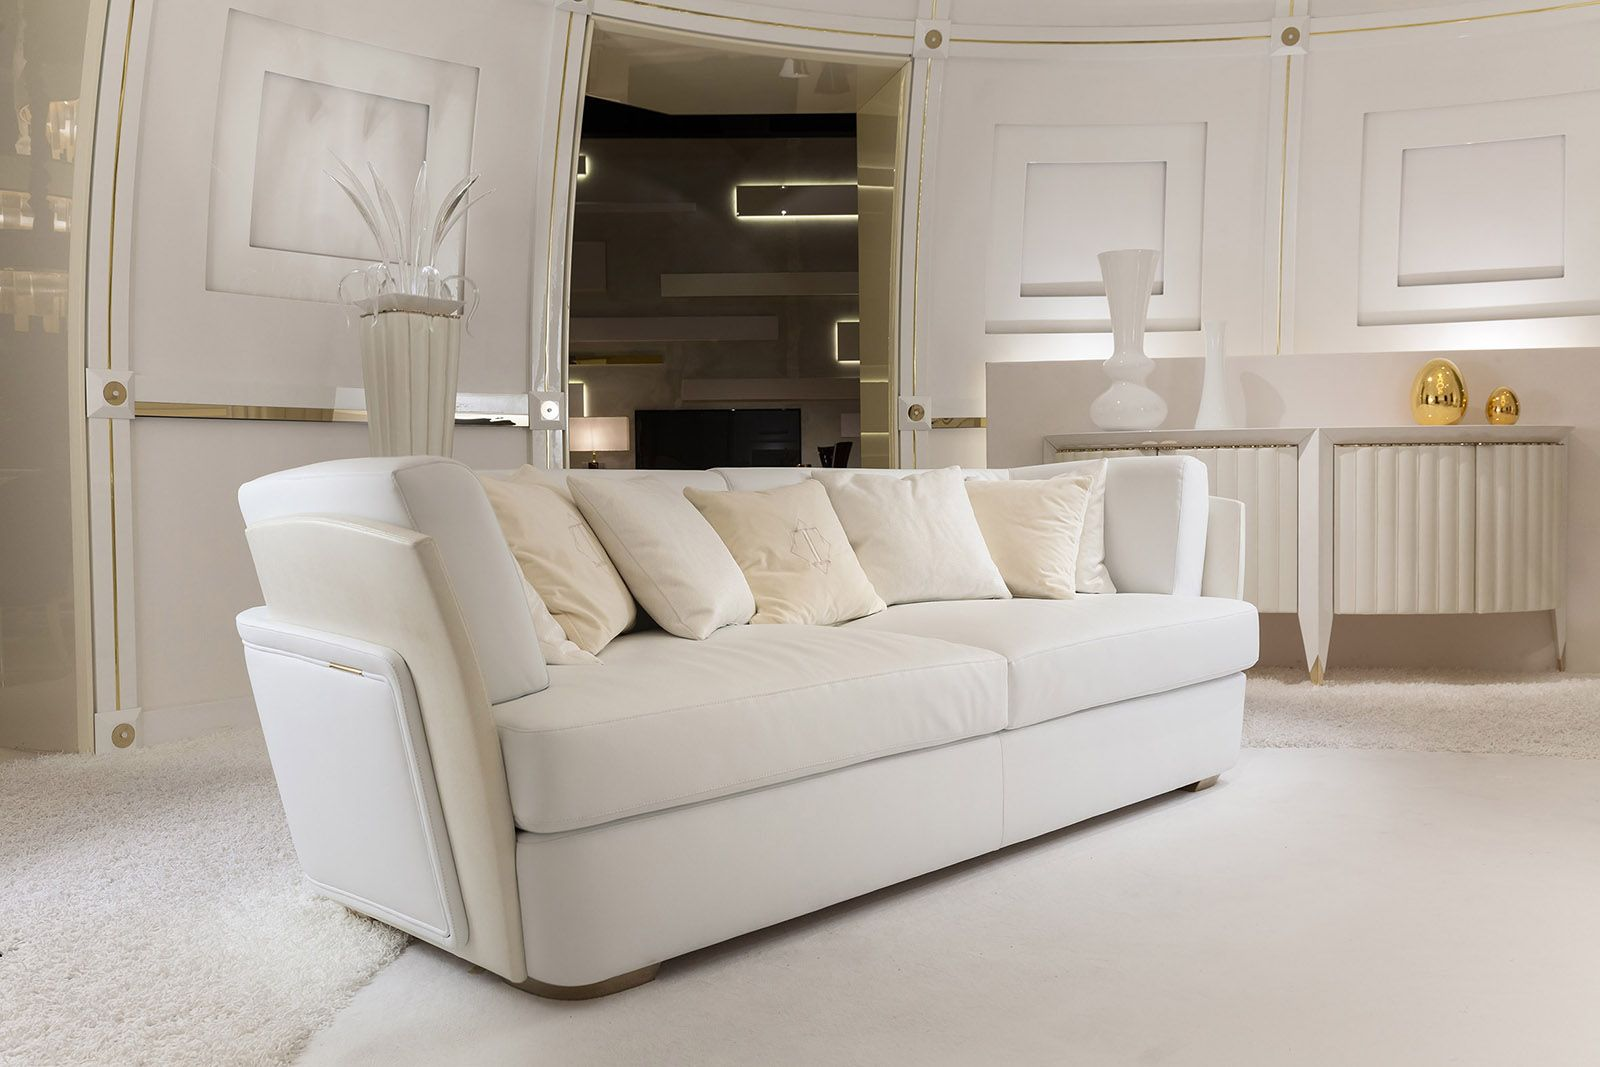 home beautiful fancy of sofa wash couch simple couches design sofas under luxury